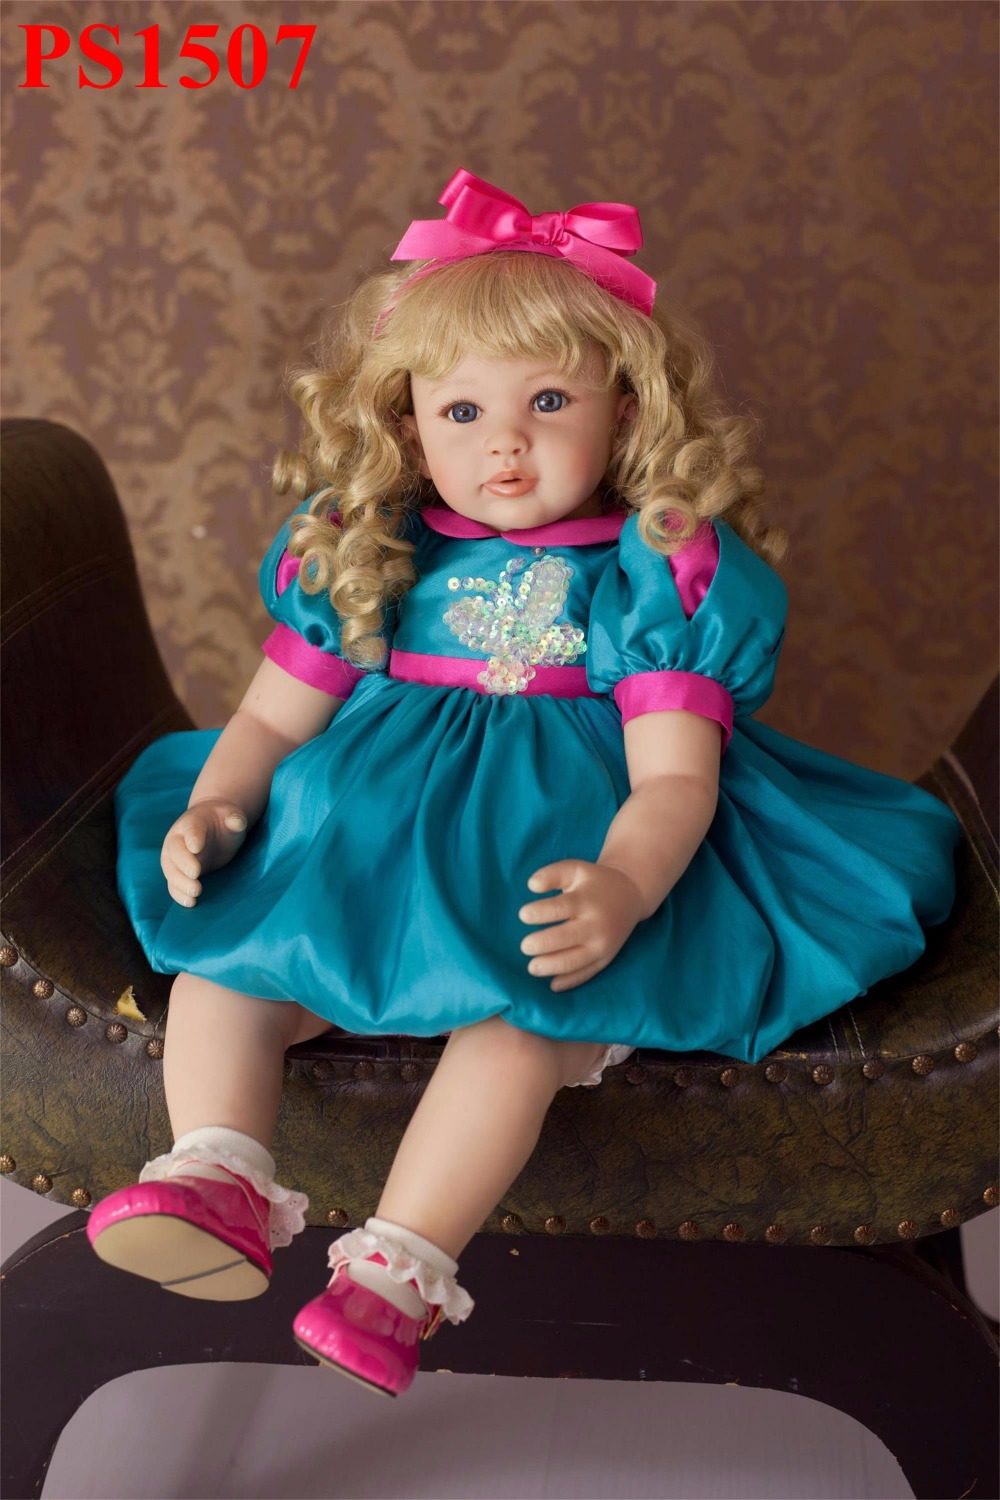 60cm Silicone Vinyl Reborn Baby Doll Toy Lifelike Toddler Princess Like Alive Bebe Girls Boneca Birthday Gift Play Doll Toys 2016 hot now fashion original edition sofia the first princess doll vinyl toy boneca accessories doll for kids best gift